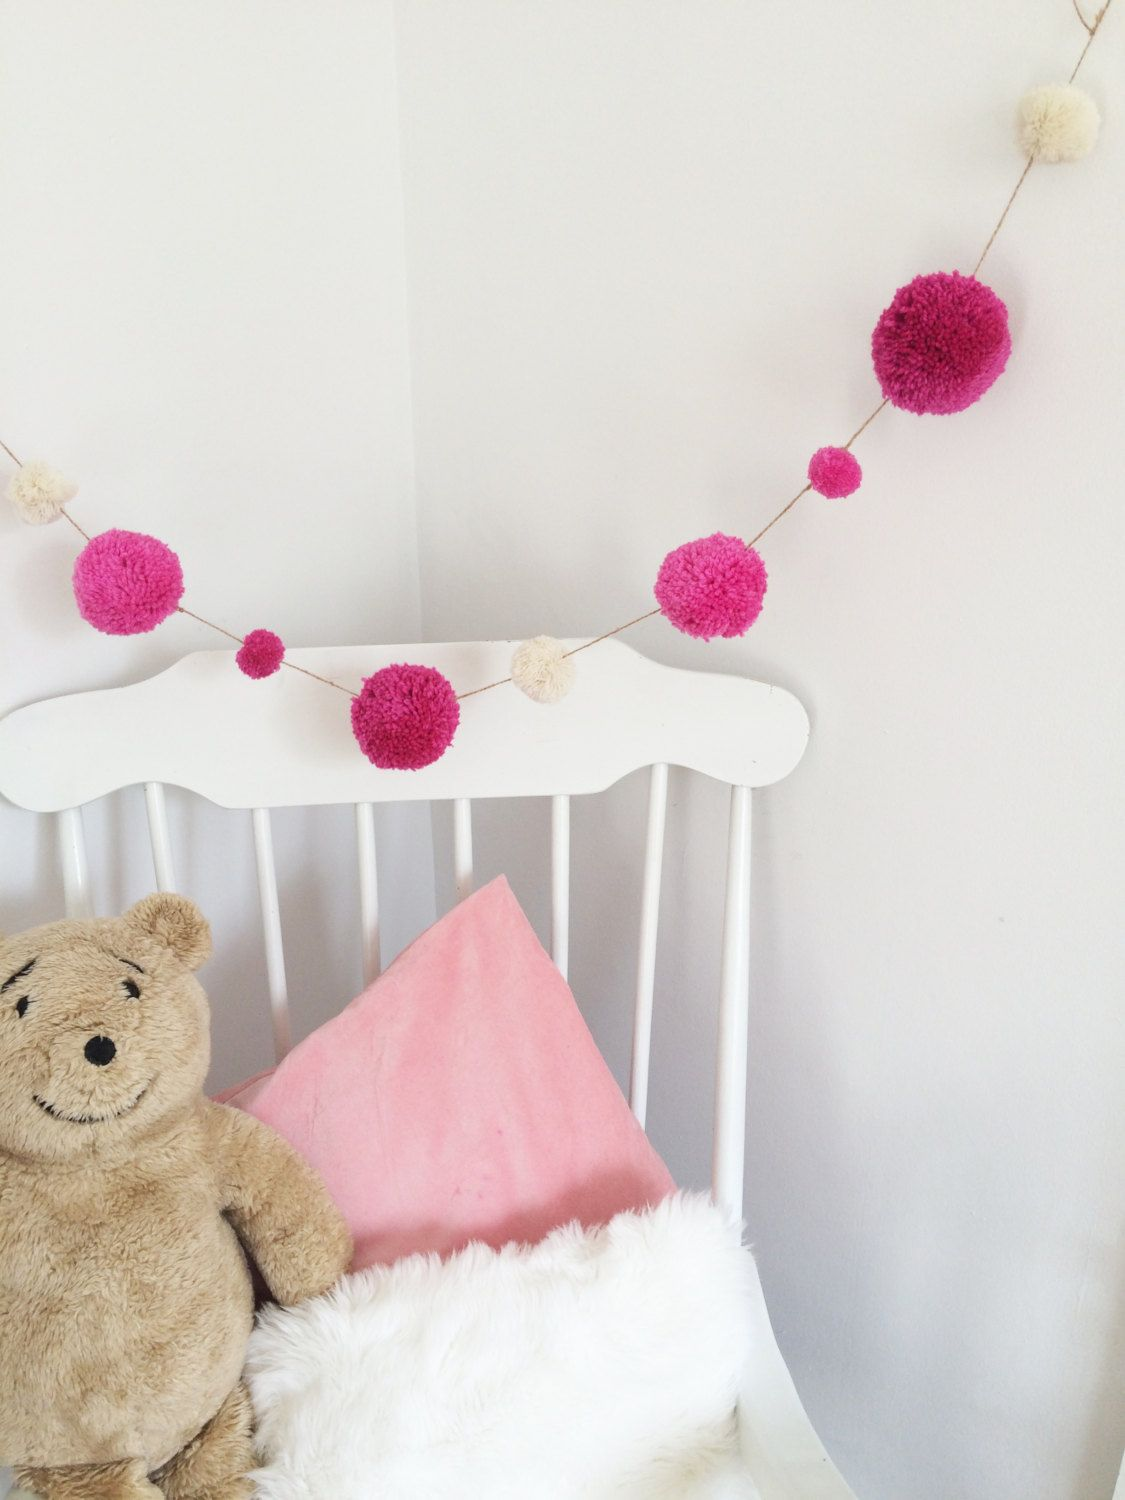 pink and cream girly colour way pom pom wool hanging garland bunting wall decoration 1000 - Girly Pictures To Colour In